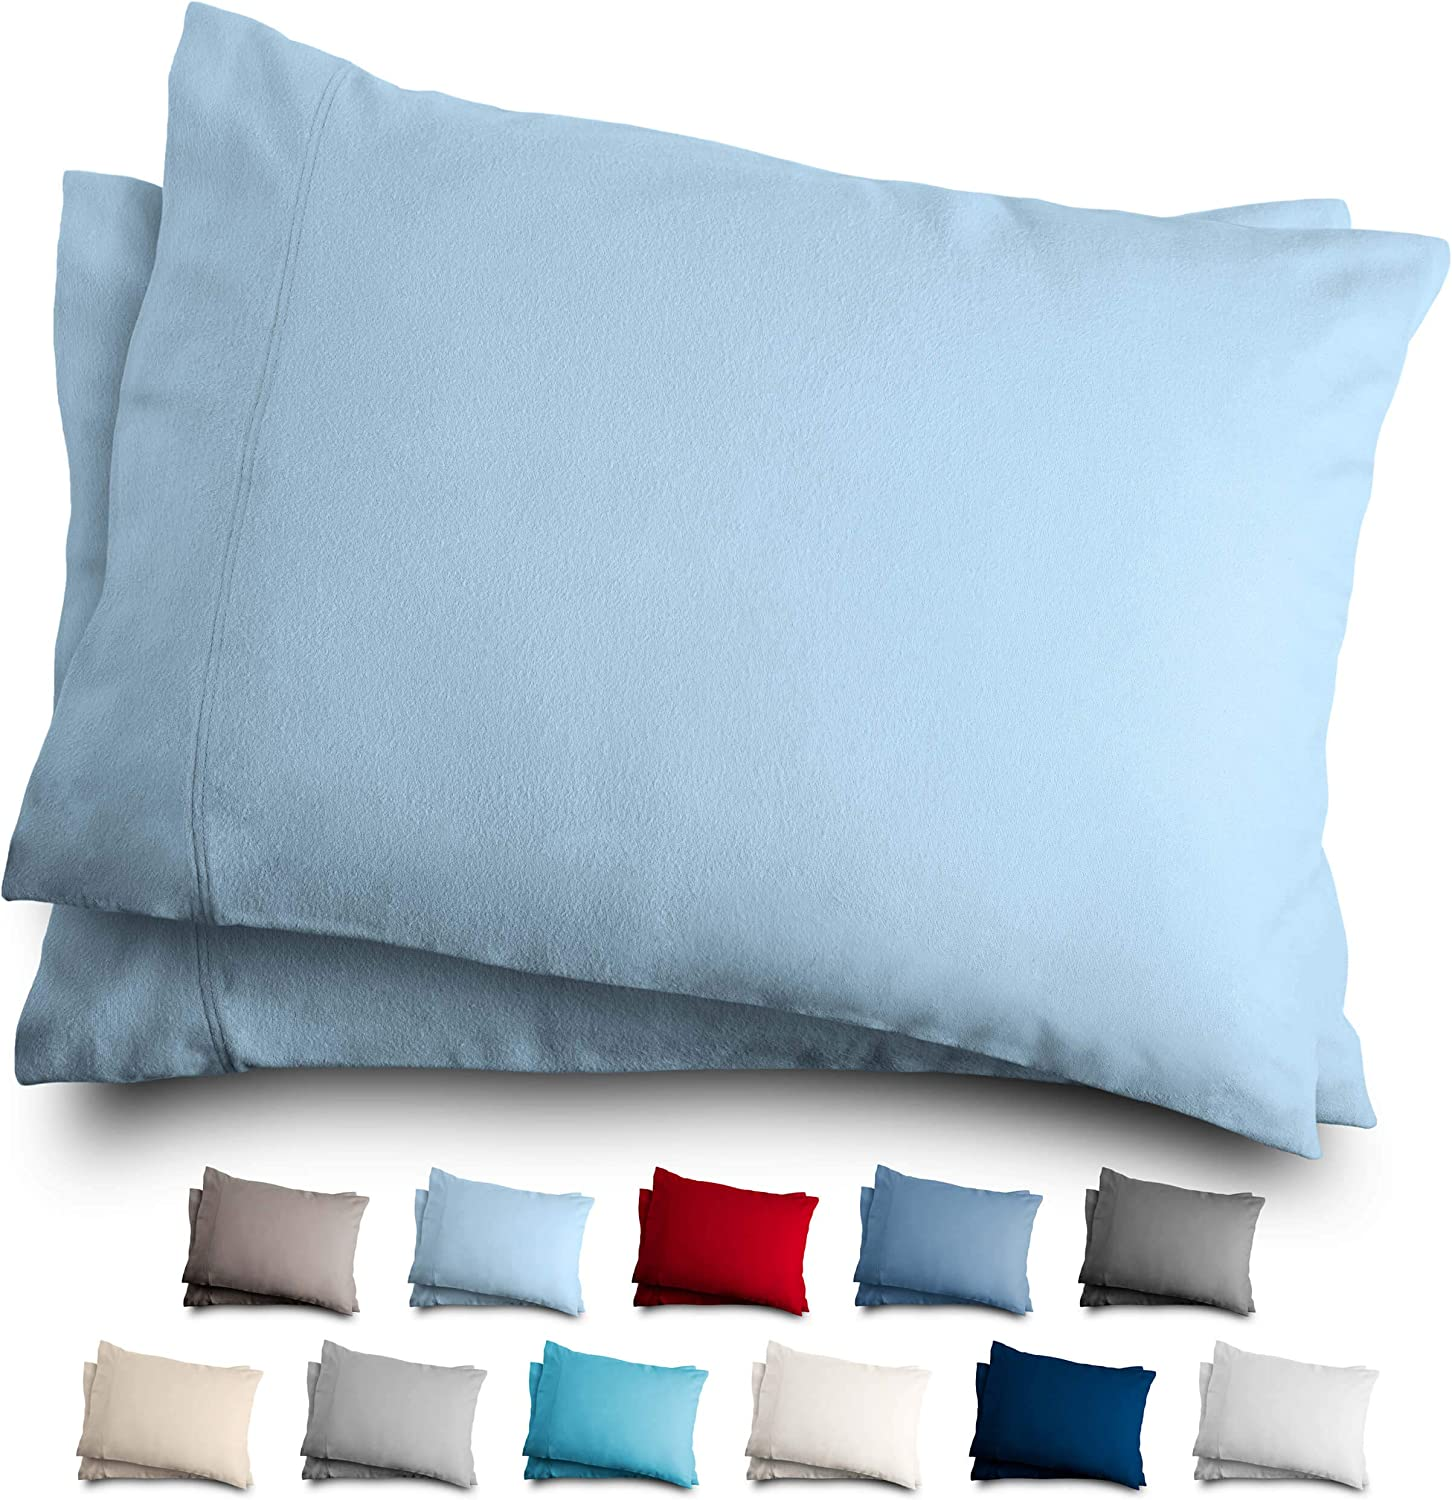 Bare Home King Flannel Pillowcase Set - 100% Cotton - Velvety Soft Heavyweight - Double Brushed Flannel (King Pillowcase Set of 2, Light Blue)